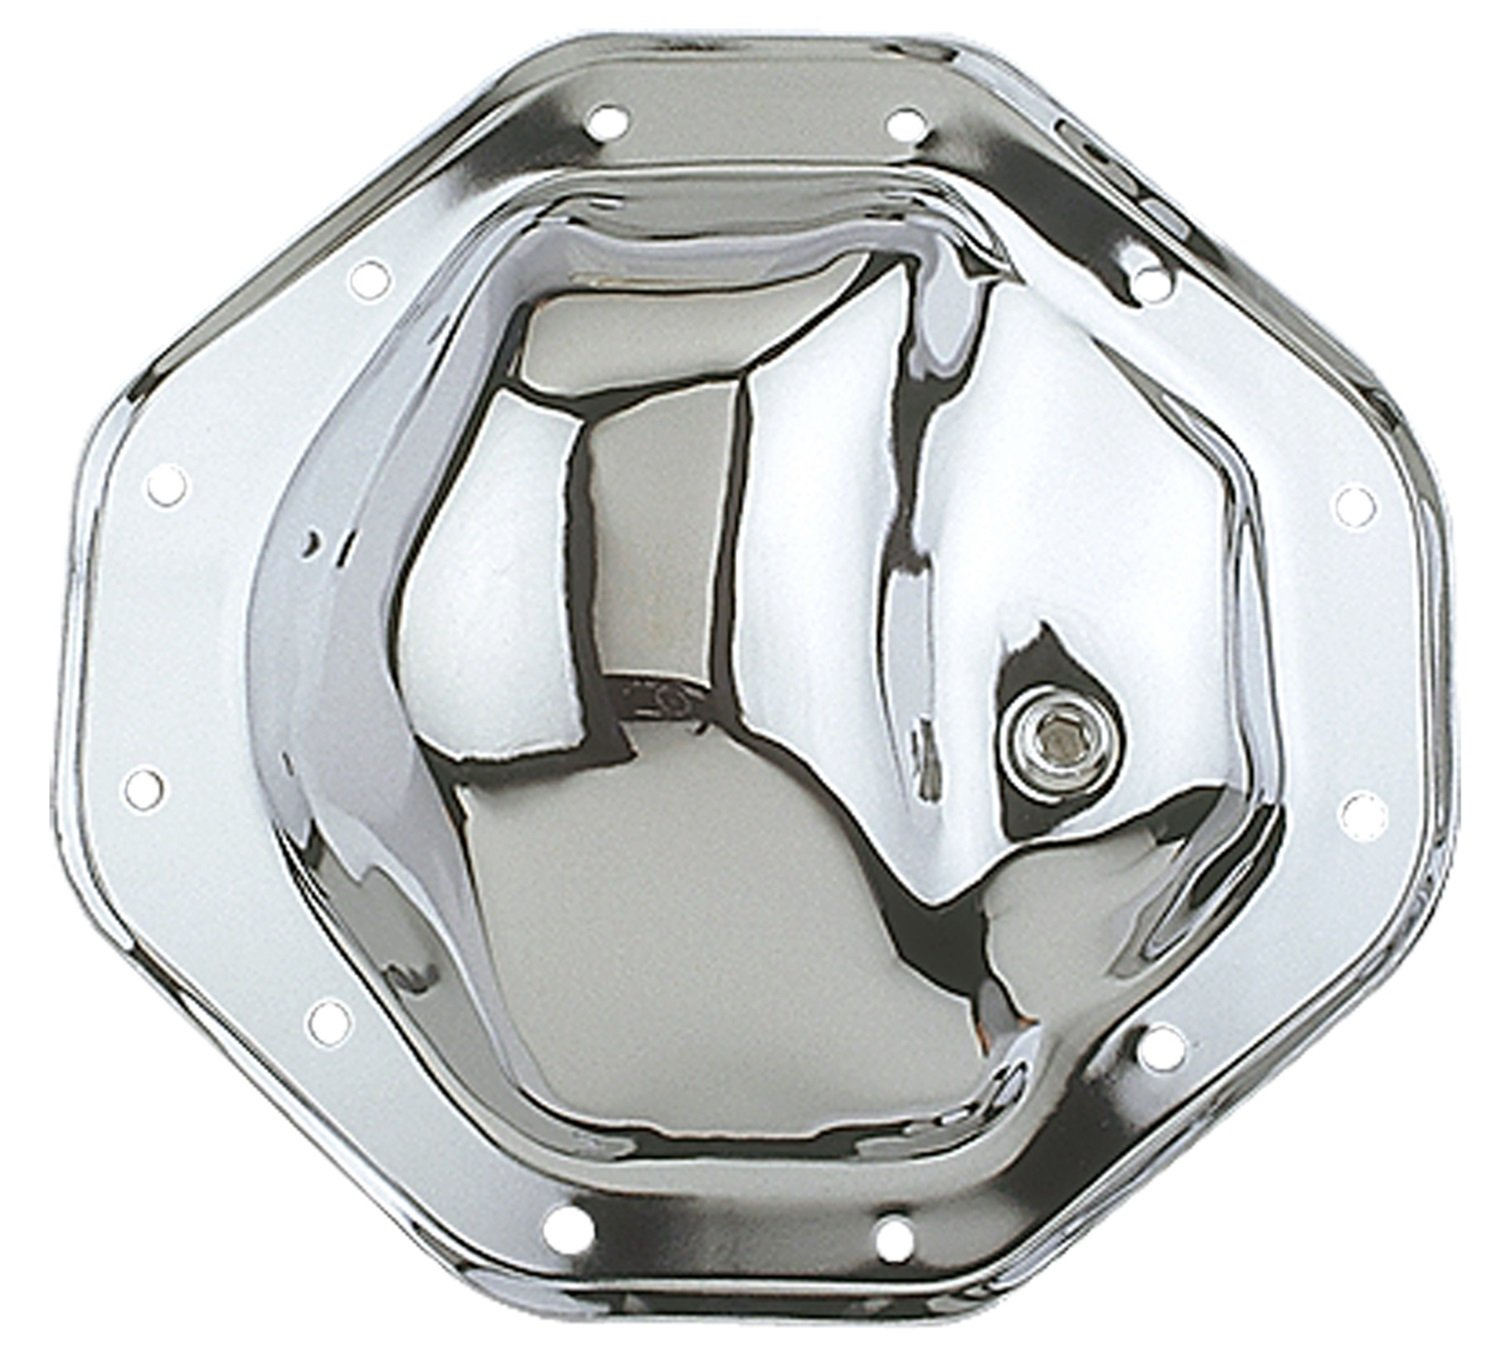 Trans-Dapt 4817 Chrome Differential Cover Trans-Dapt Performance